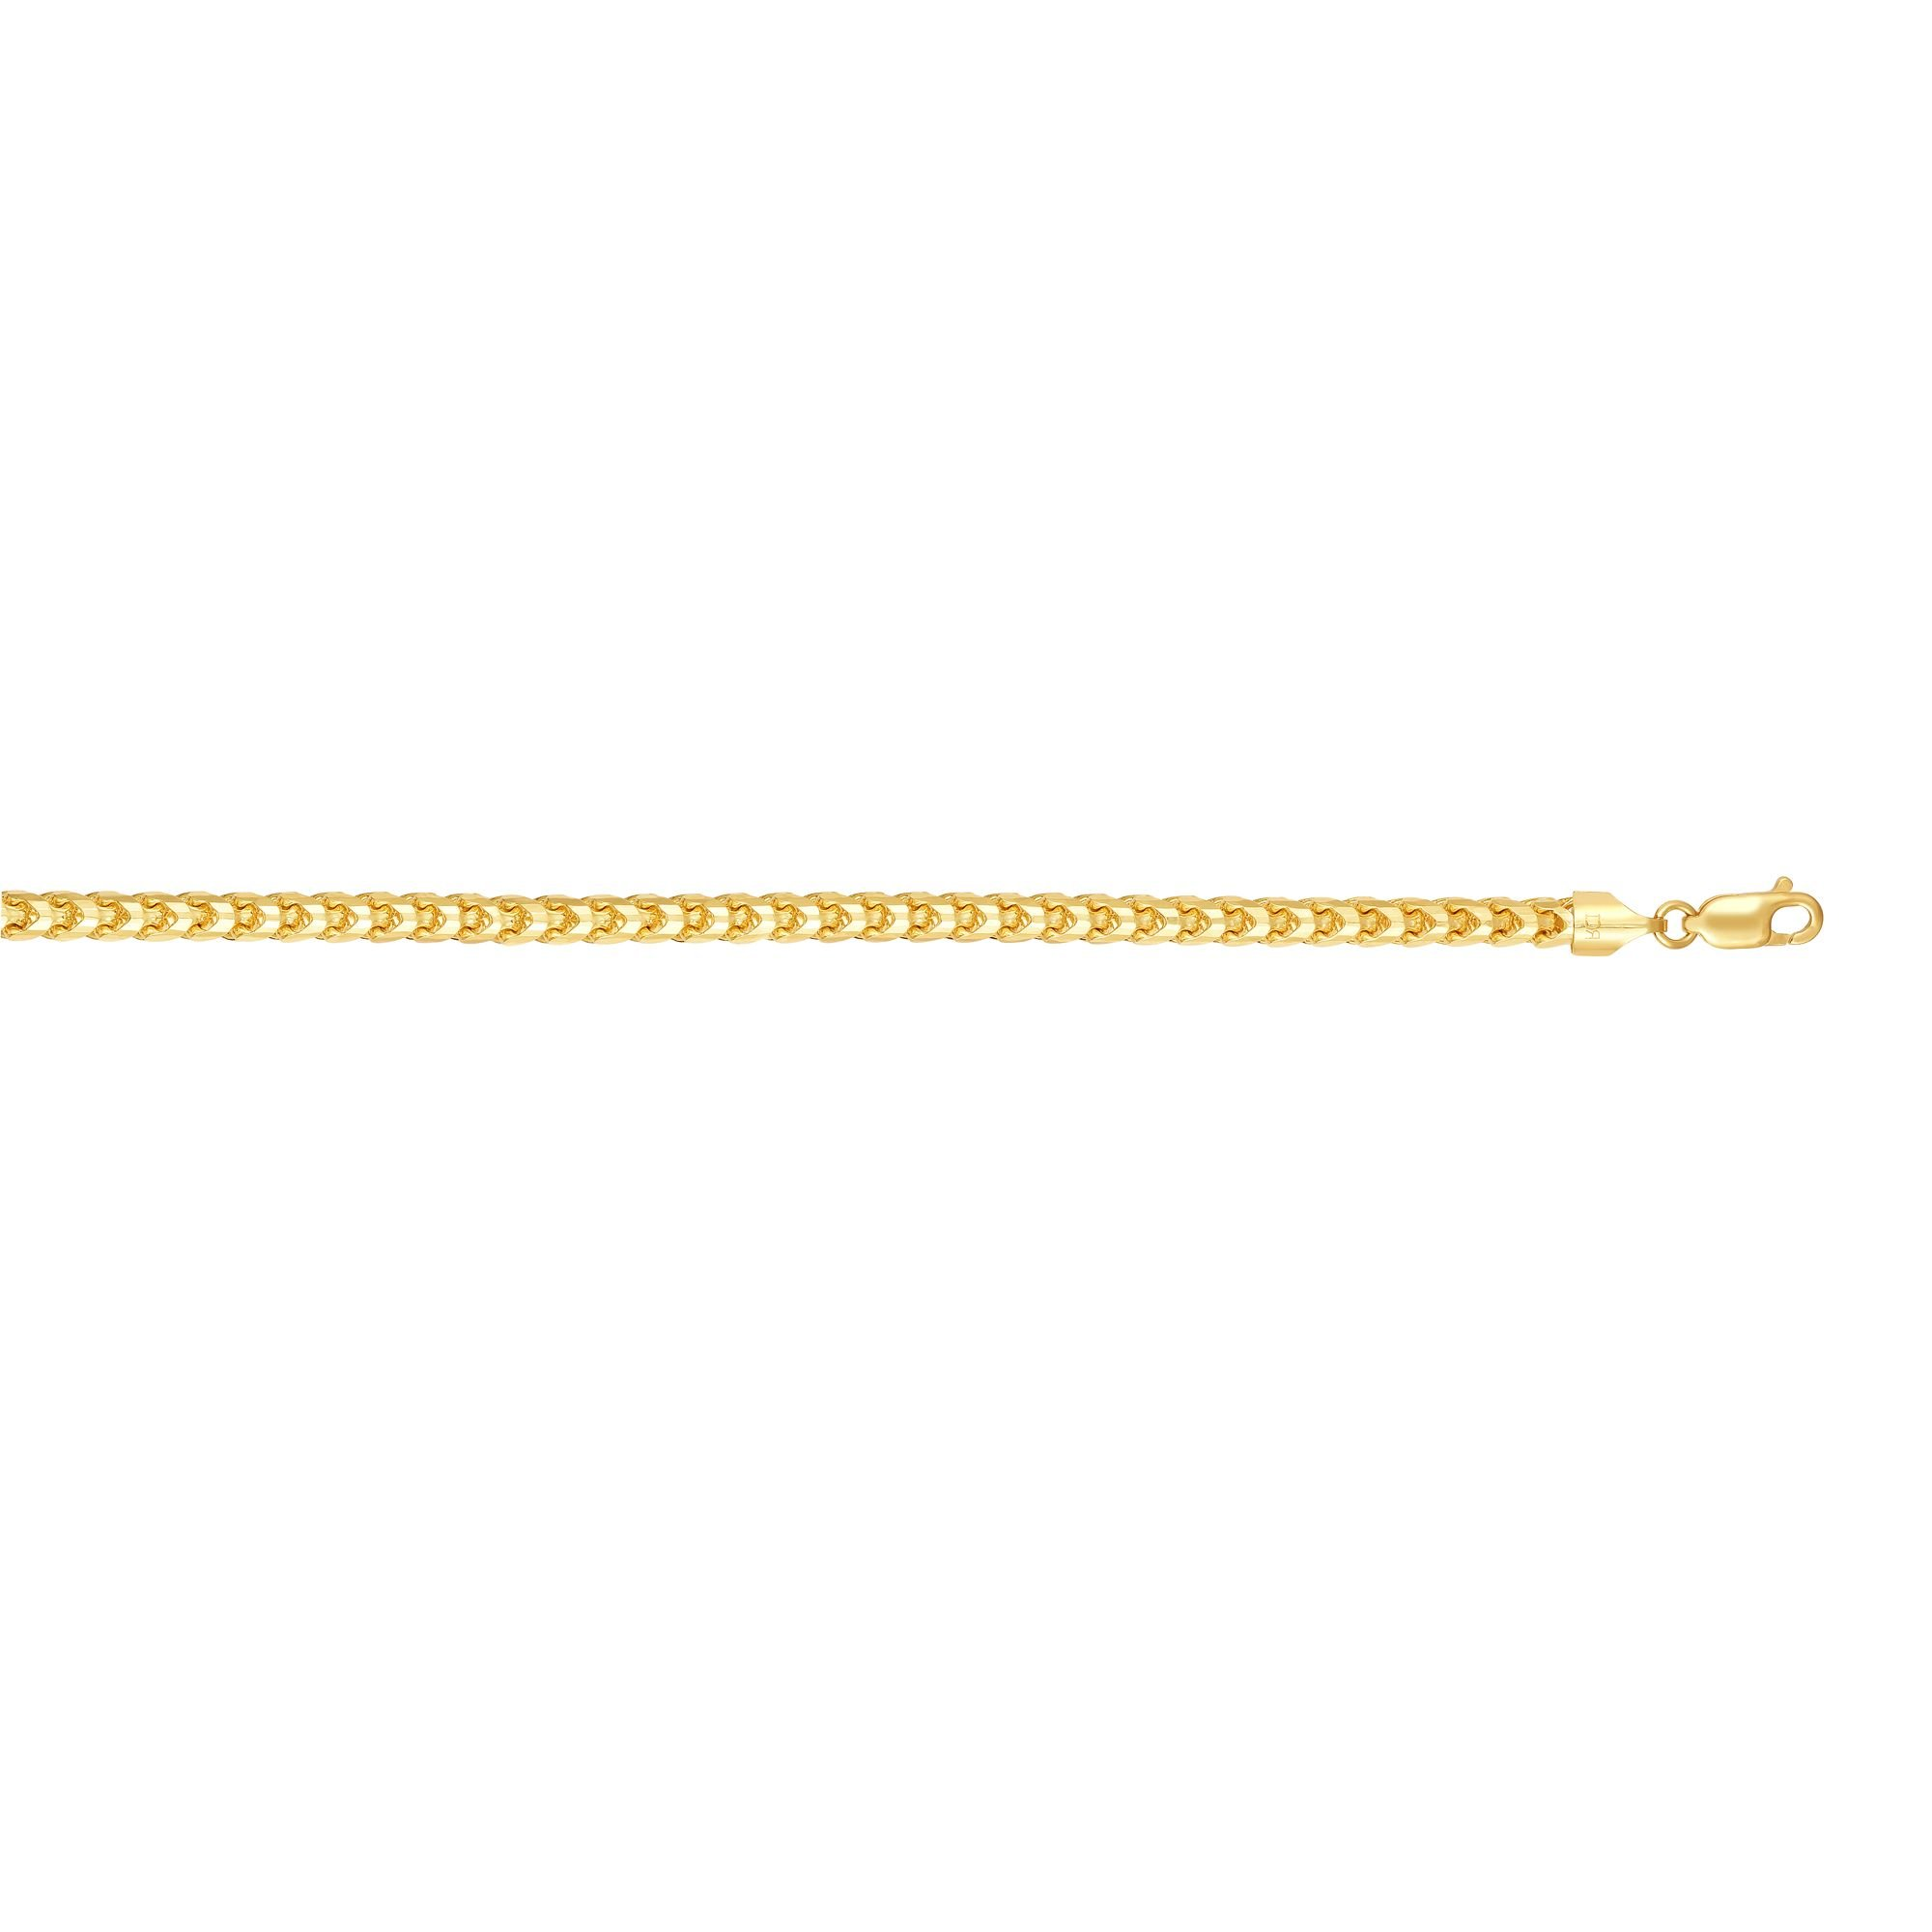 14K Yellow Gold Solid 5mm Round Franco Chain Diamond Cut 8.75'' Long Bracelet with Lobster Clasp